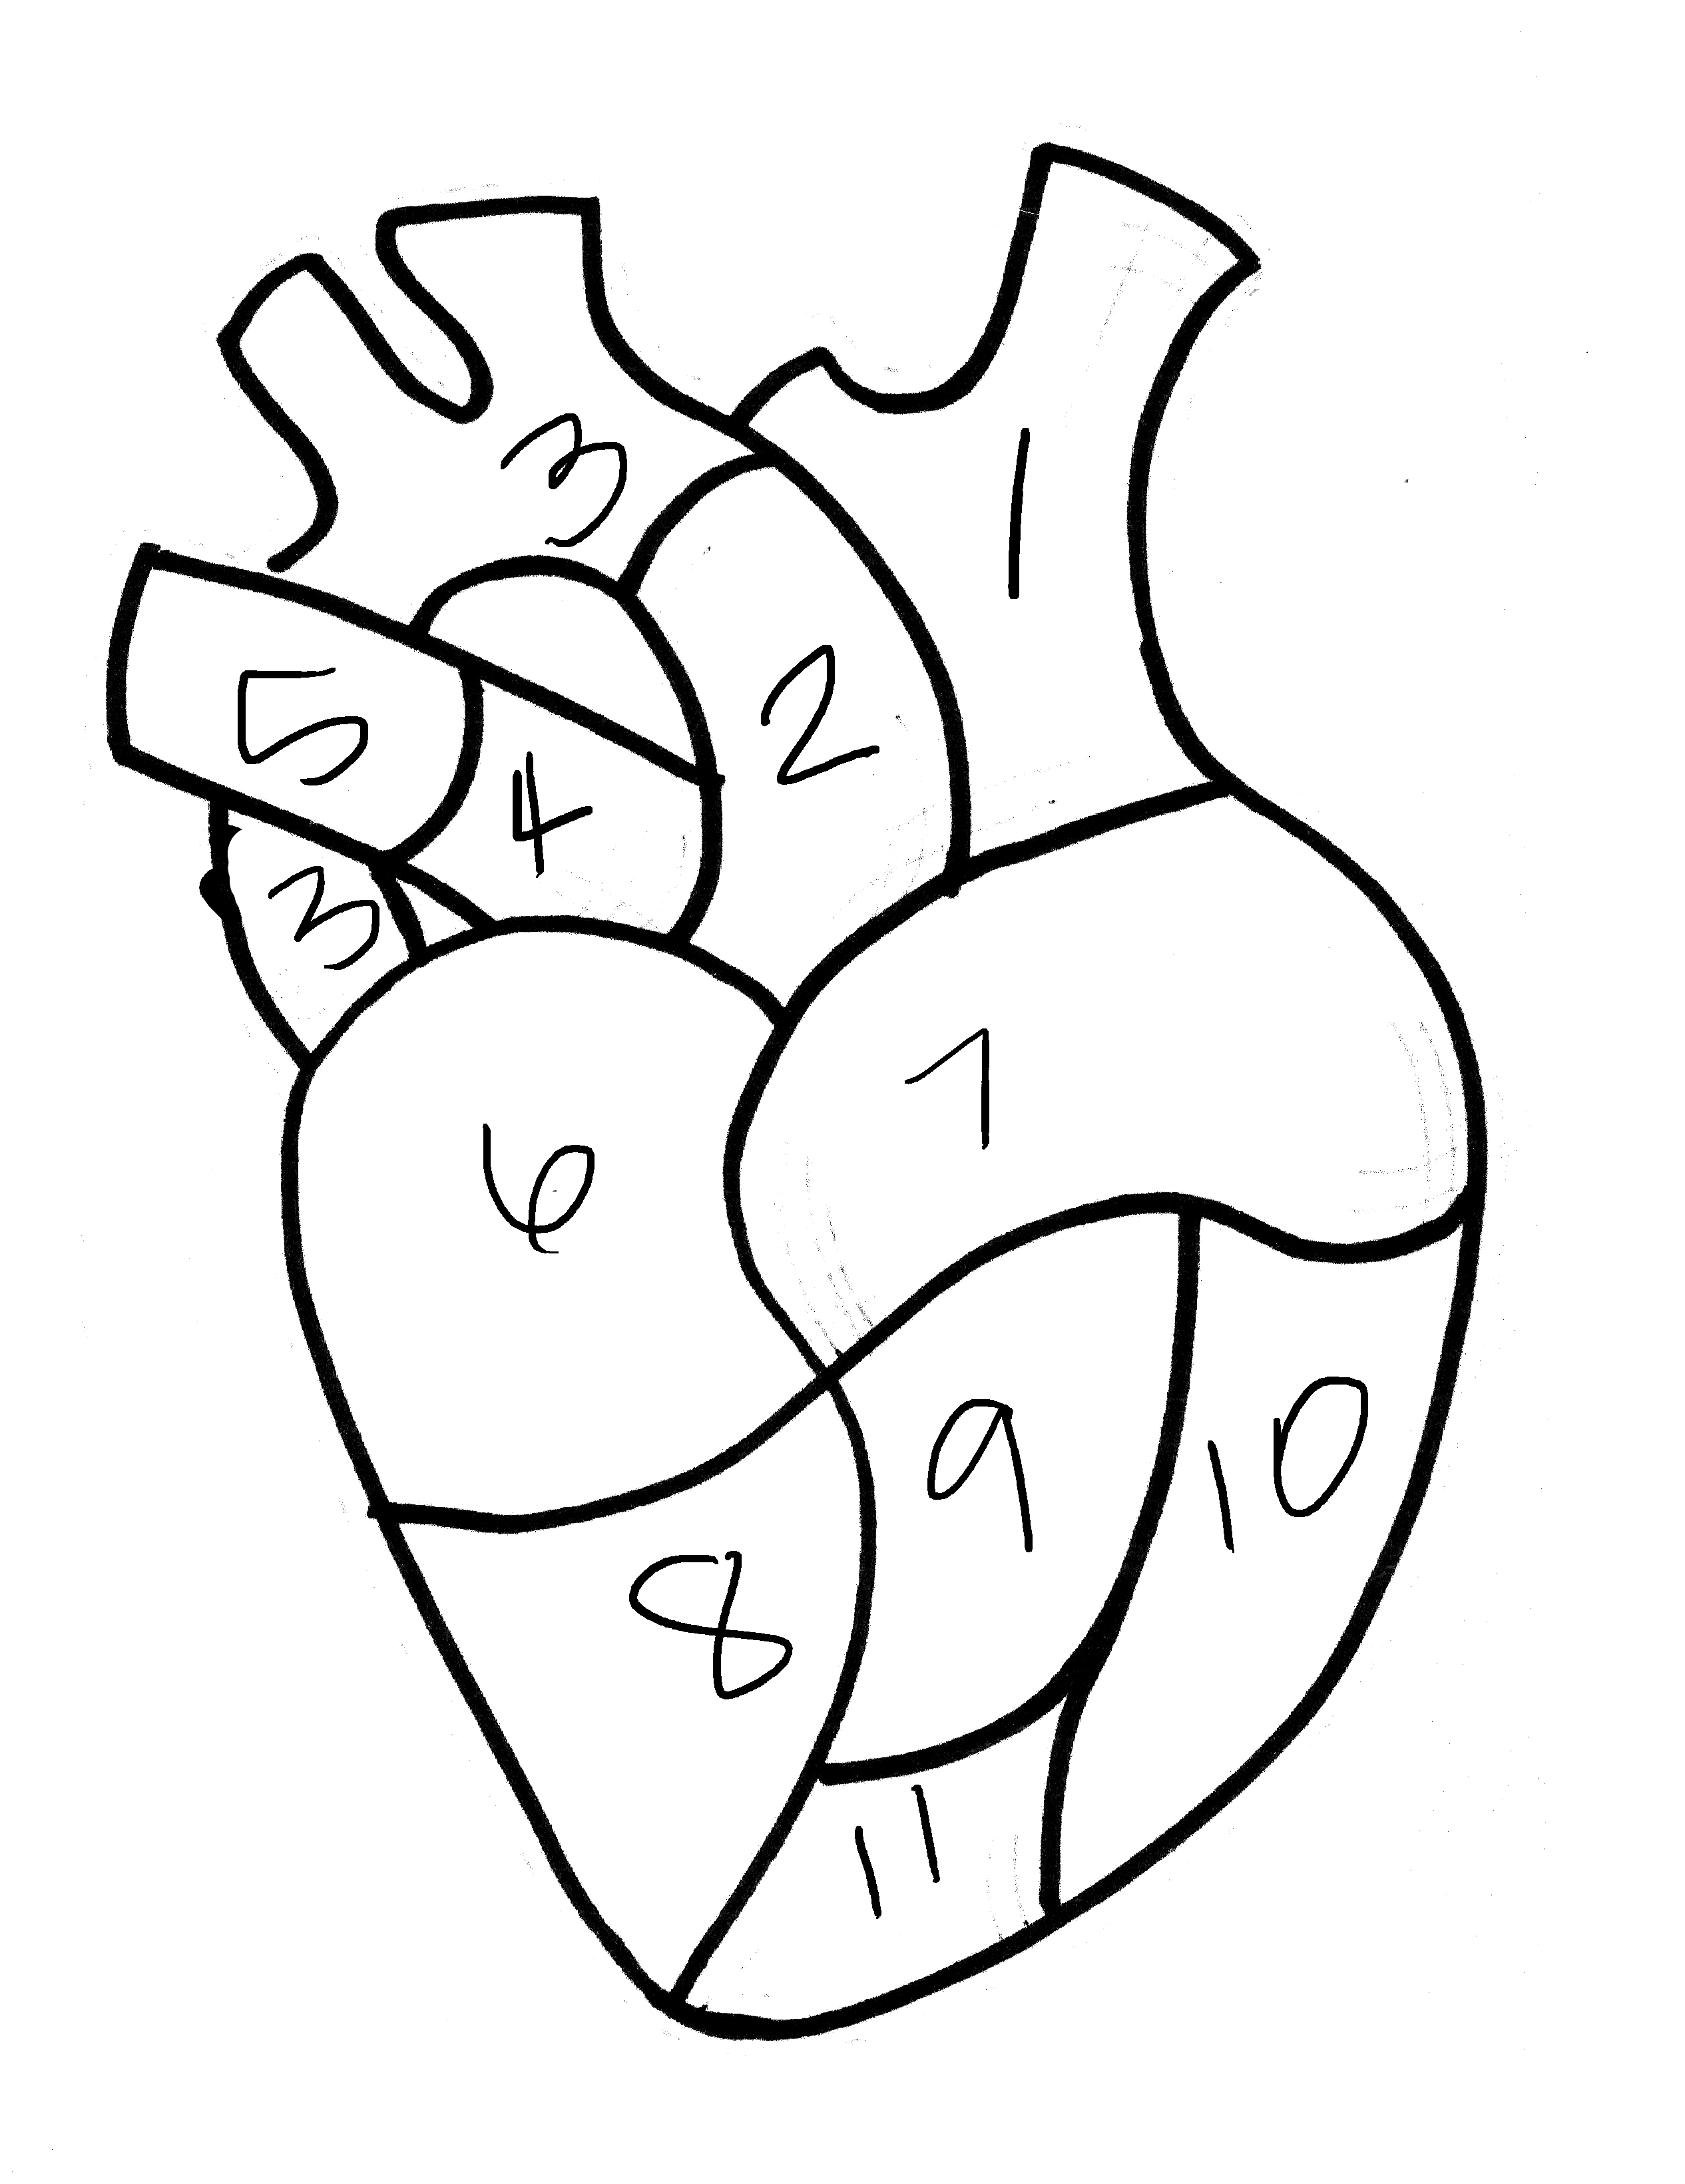 real heart coloring pages anatomical heart pillow cover hearts and sharts pages real heart coloring